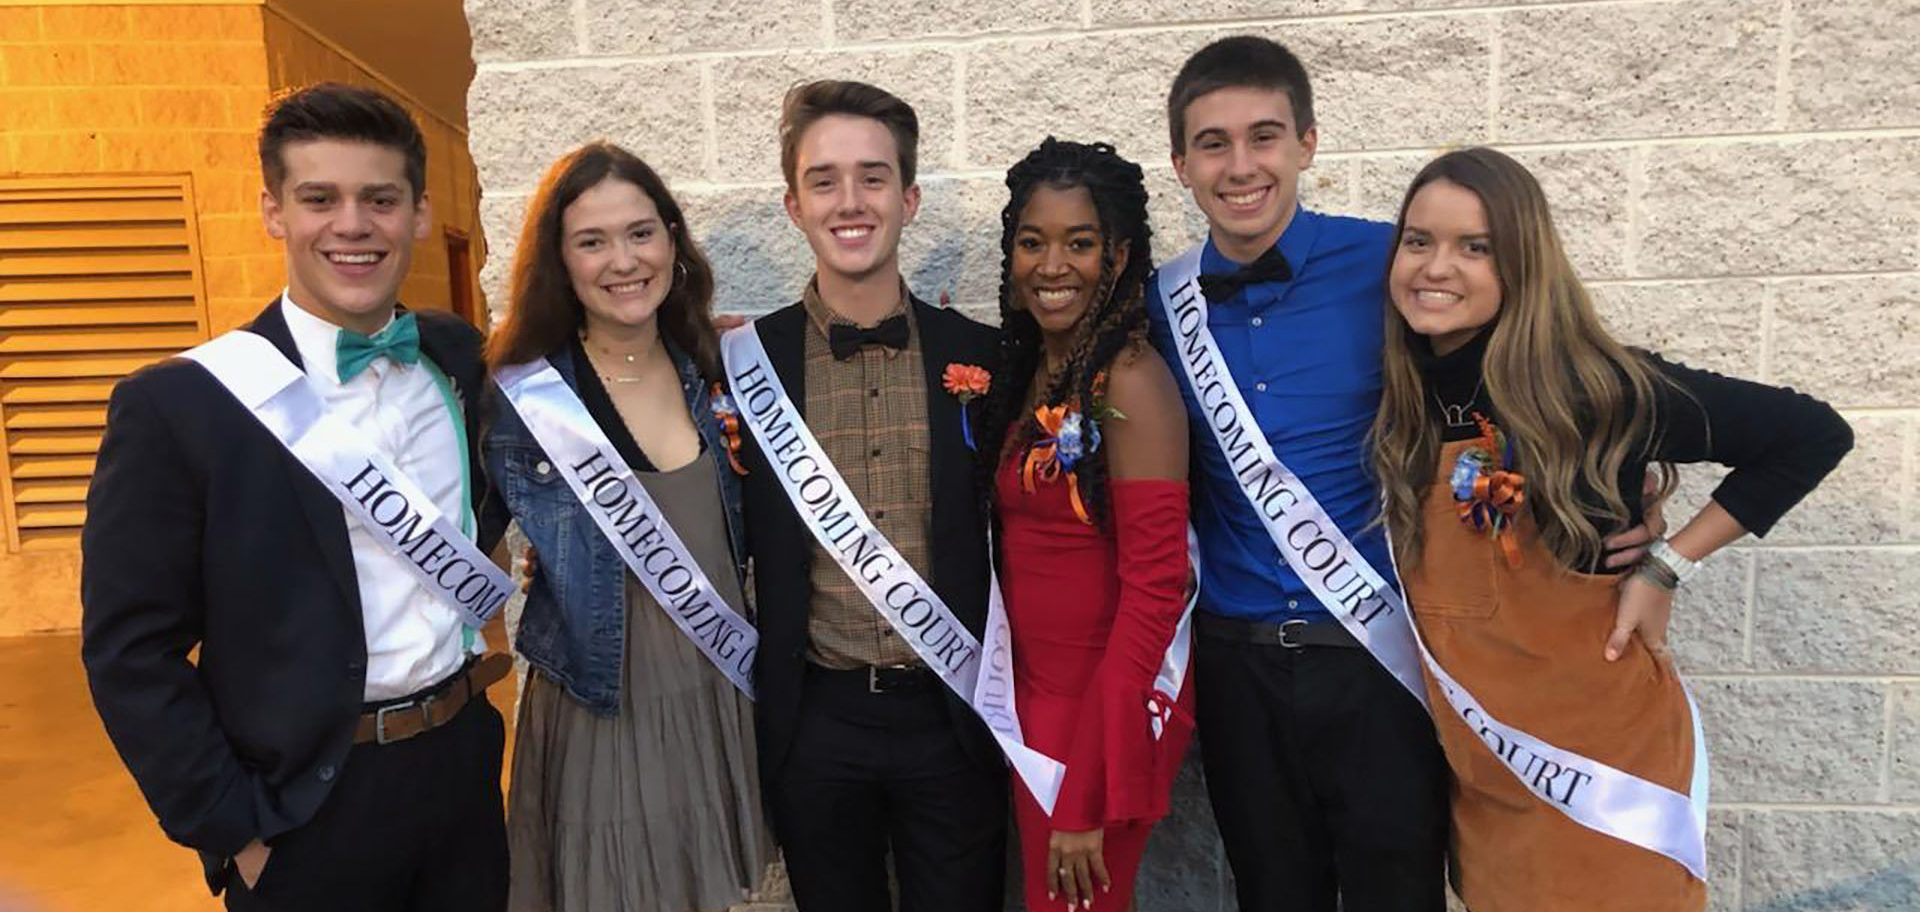 Six students pose with their homecoming court sashes on.